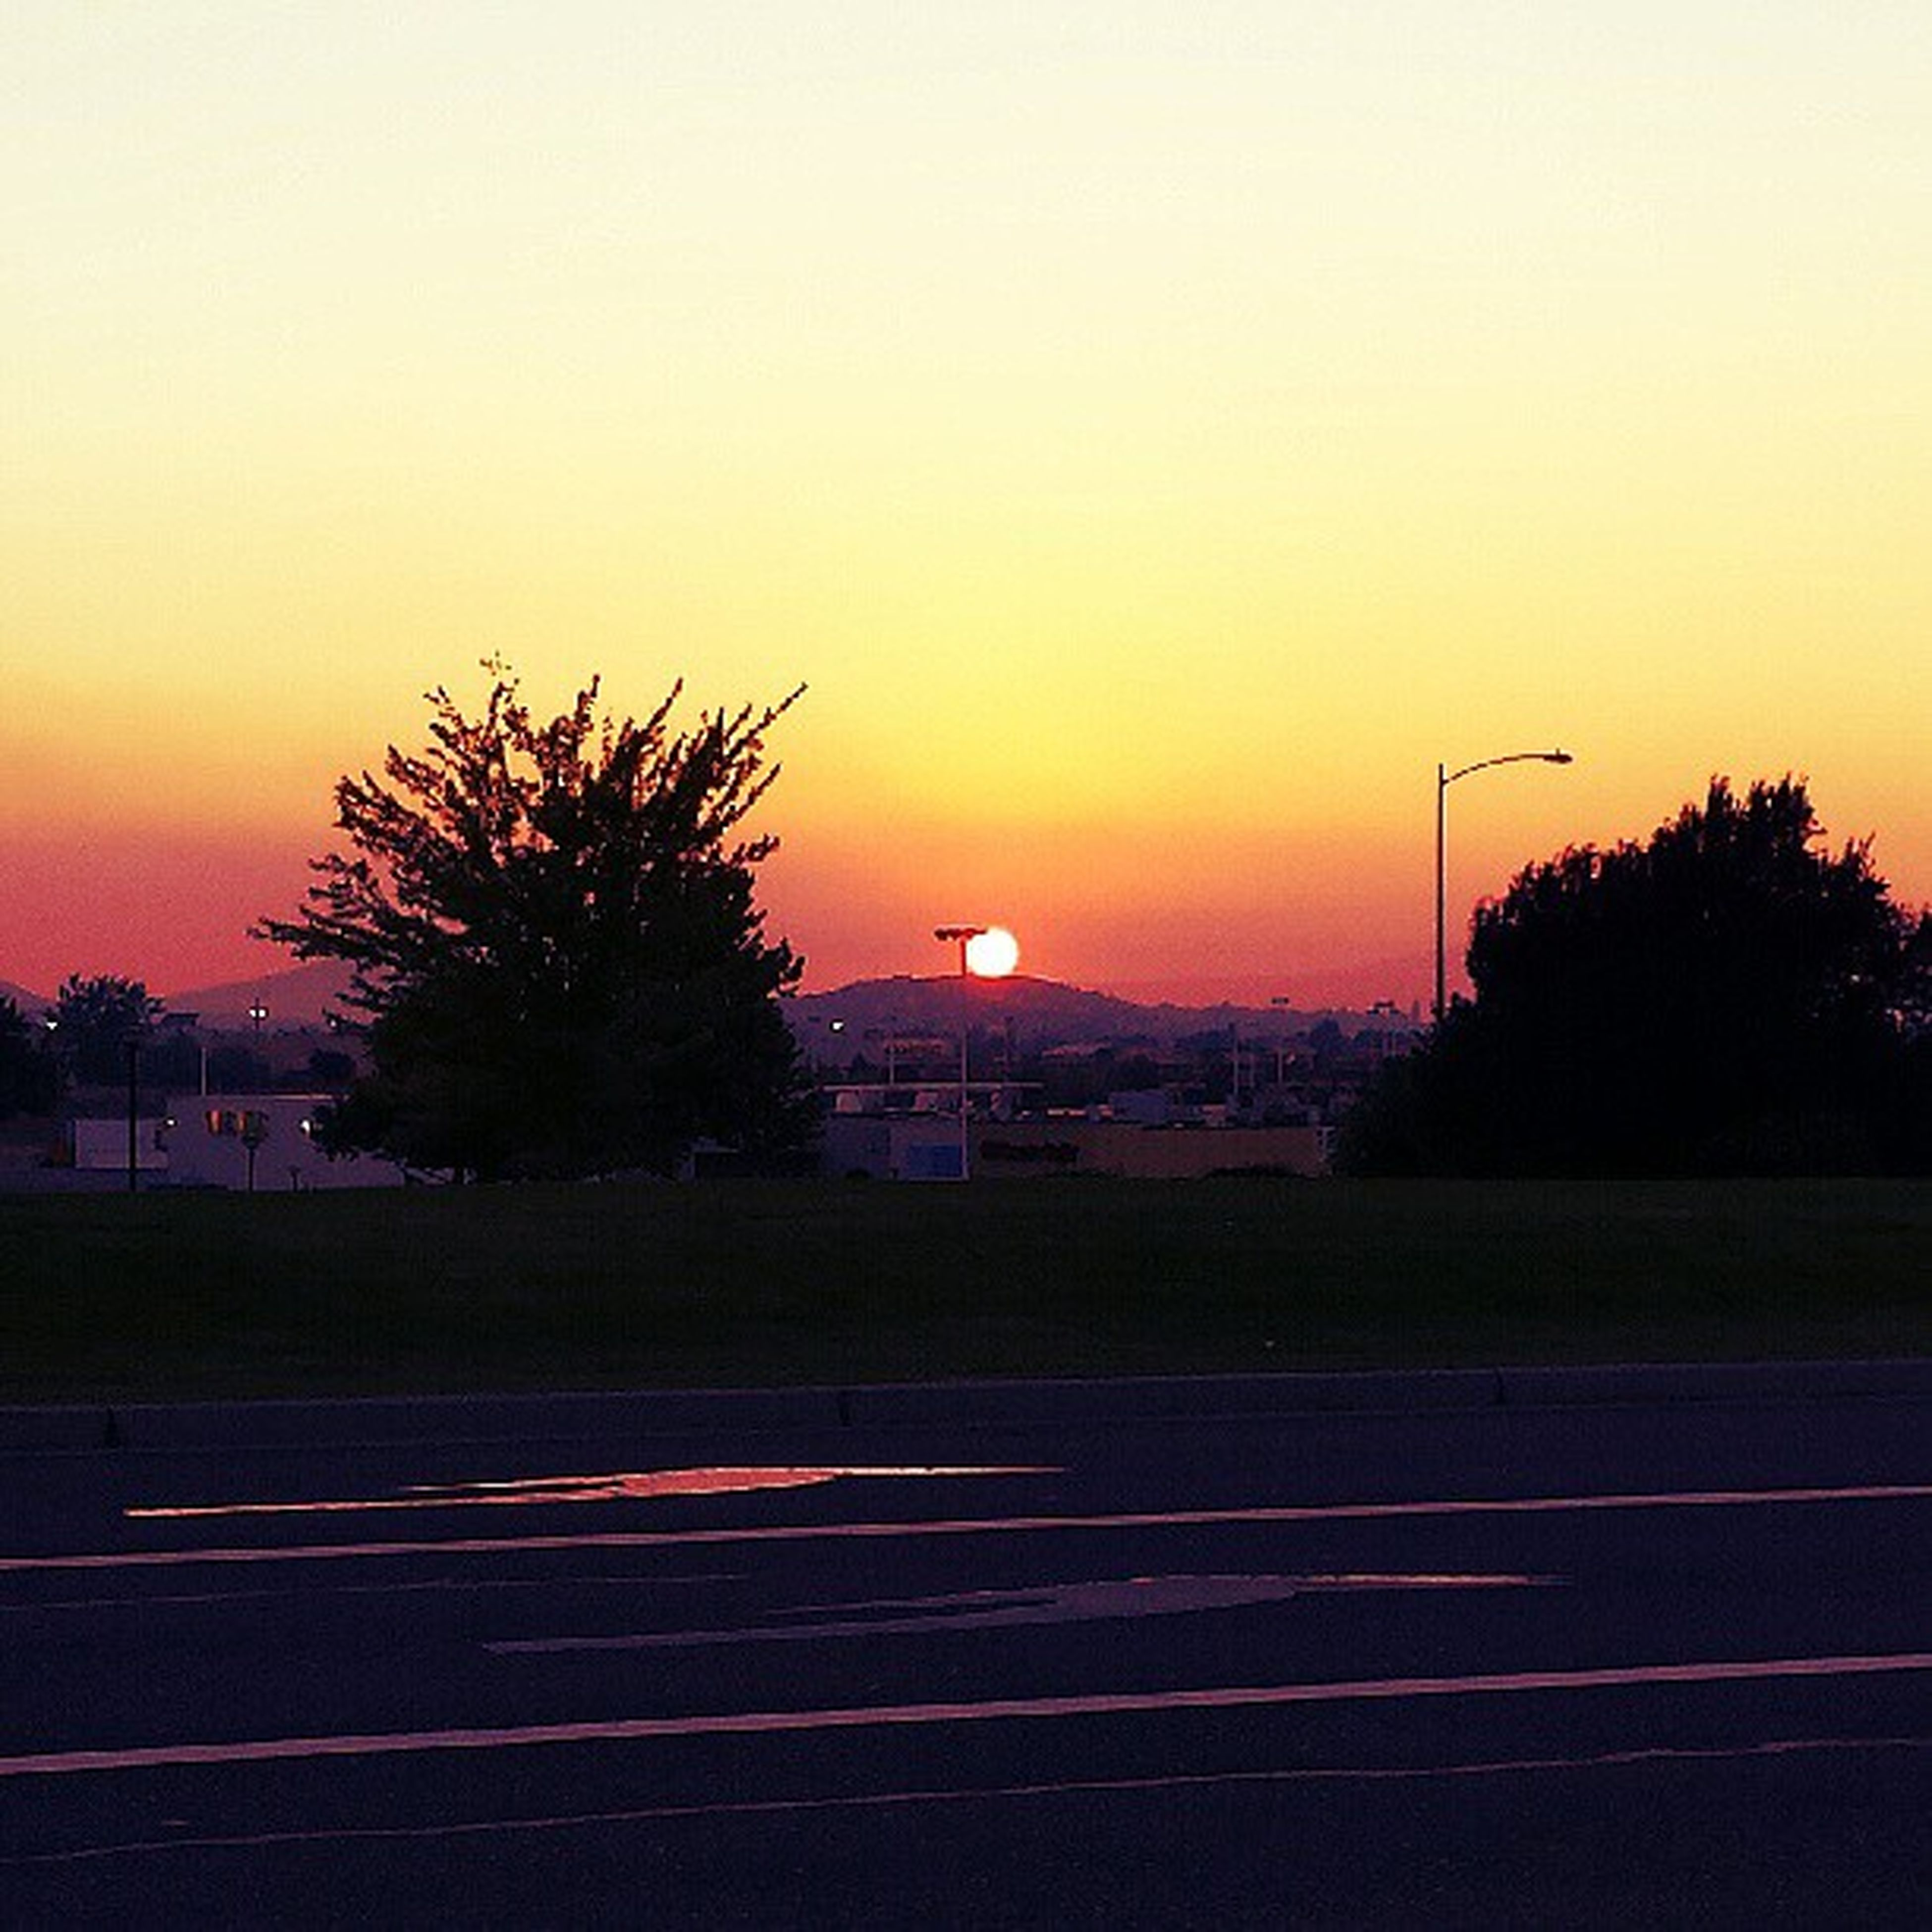 sunset, silhouette, orange color, tree, road, landscape, sky, transportation, clear sky, copy space, dusk, illuminated, scenics, tranquil scene, field, tranquility, beauty in nature, nature, street light, street